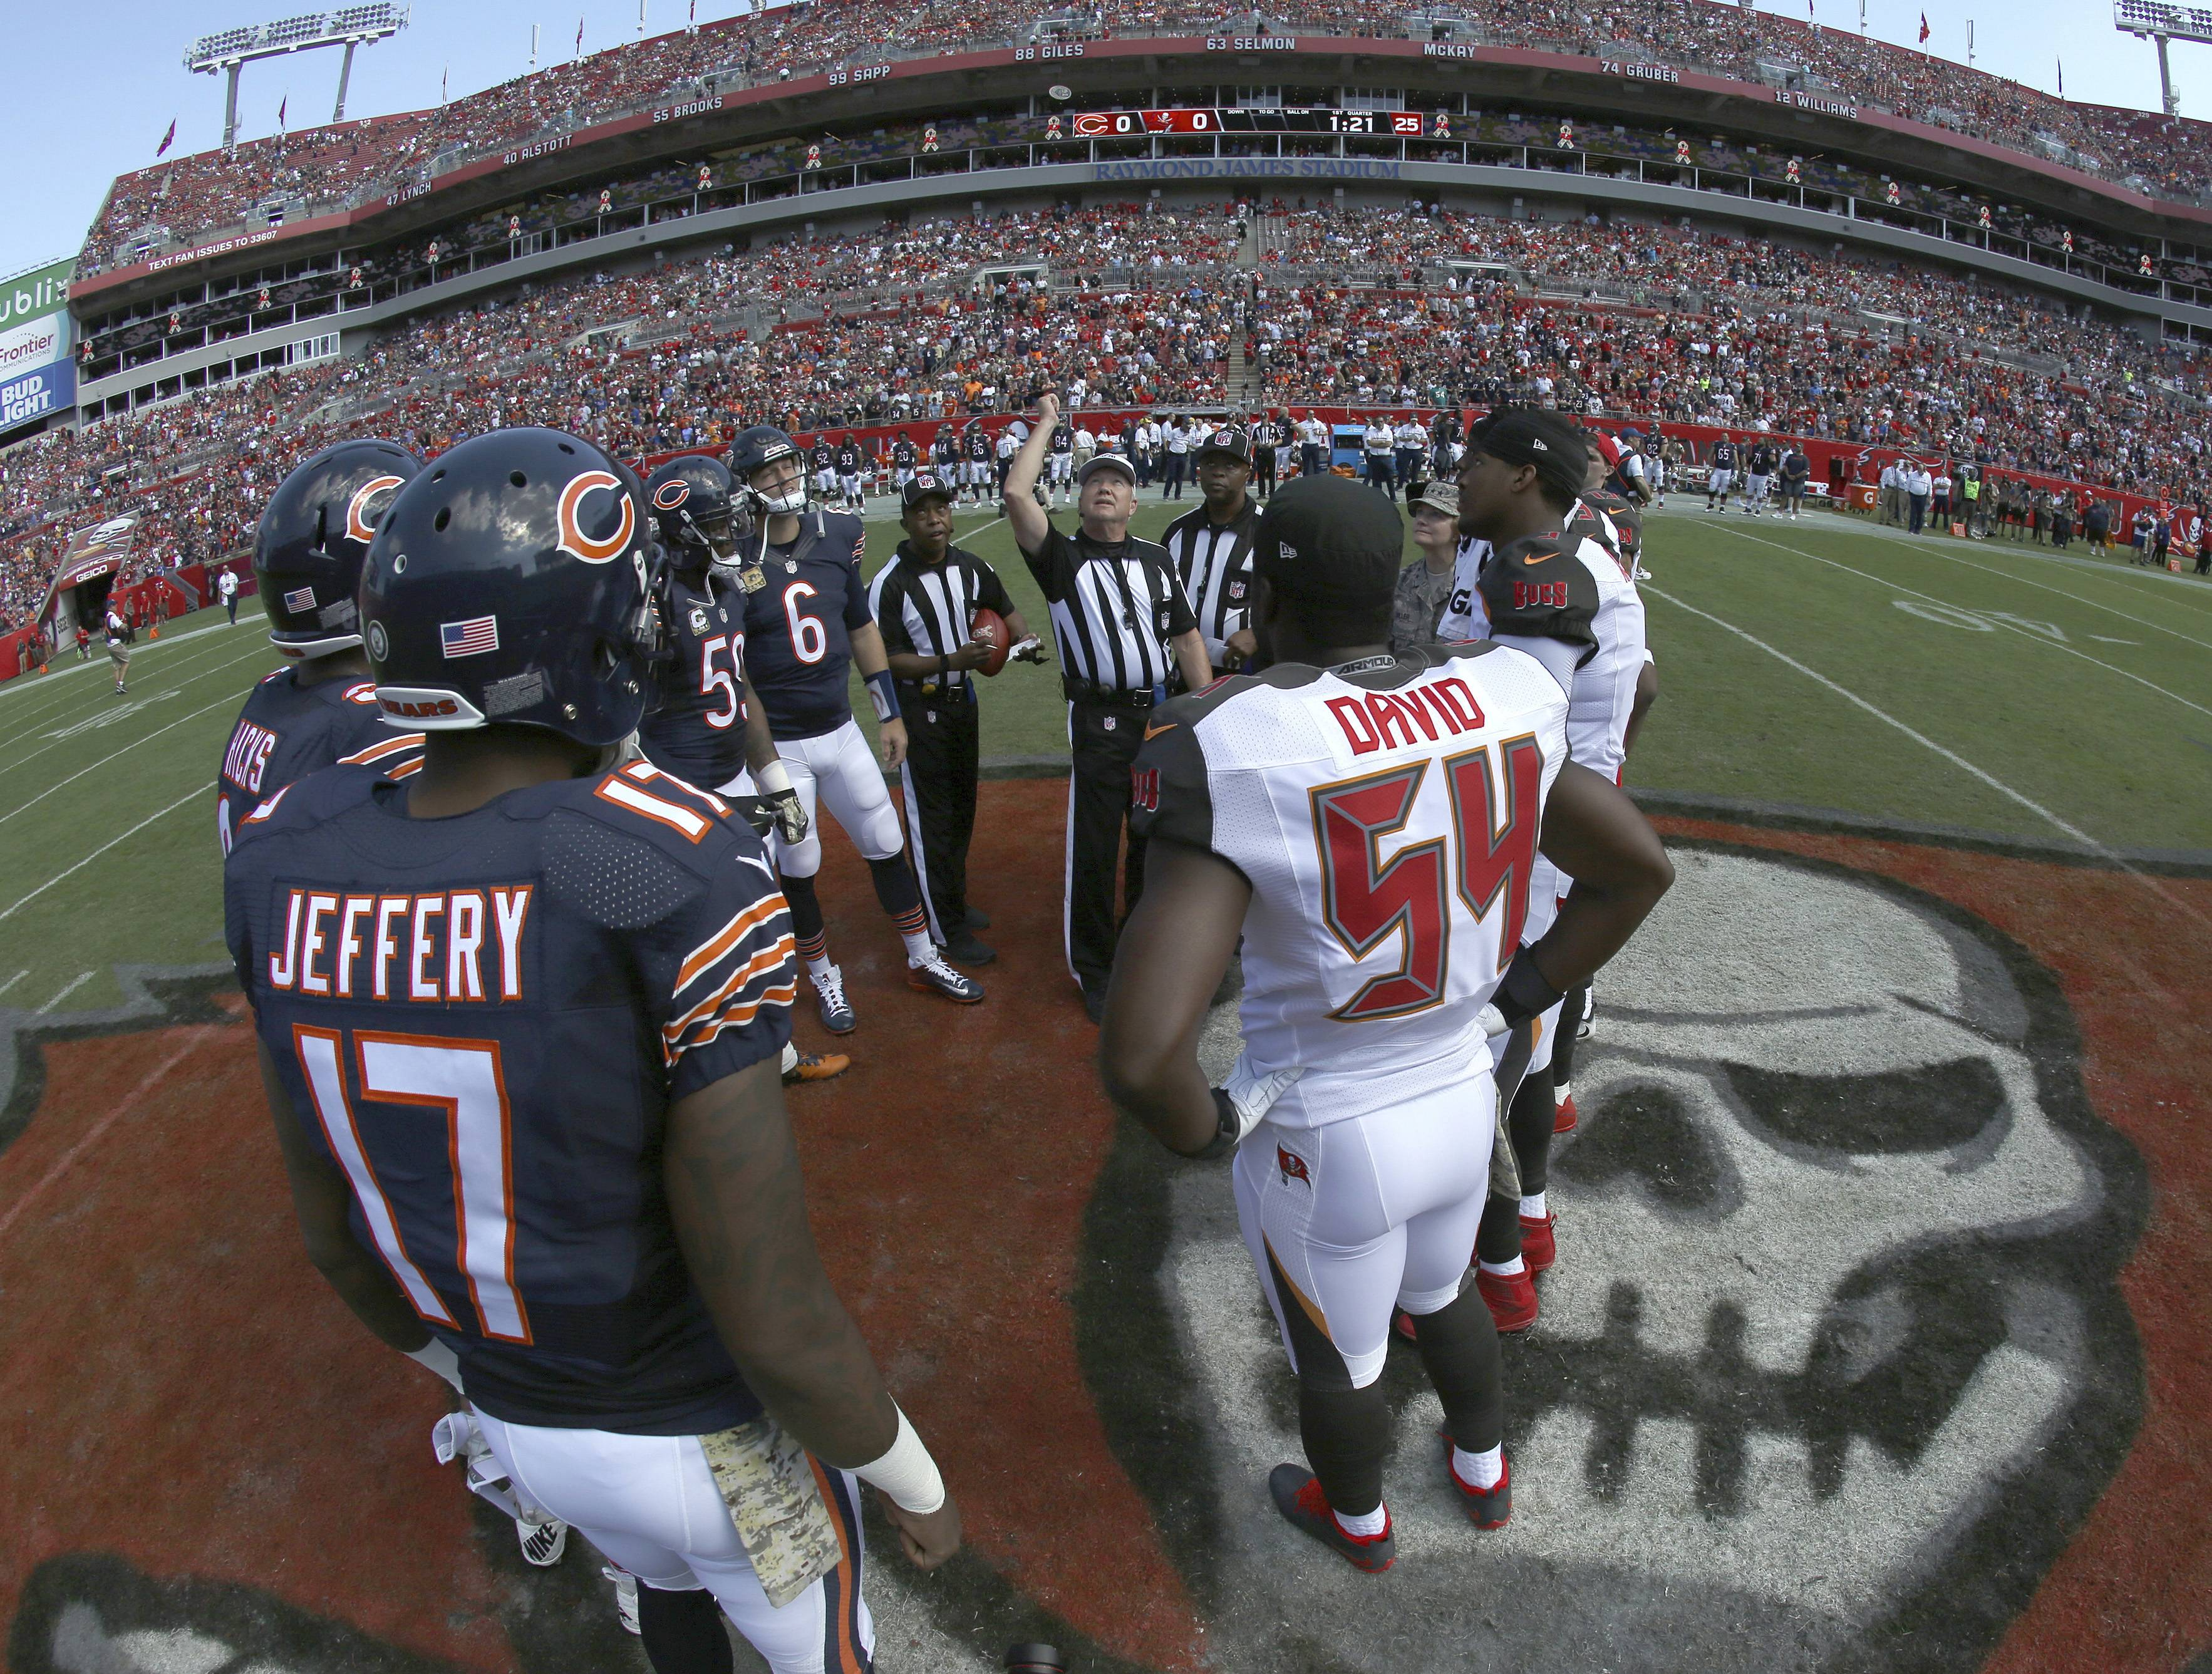 The Chicago Bears and Tampa Bay Buccaneers will play in Tampa this weekend at Raymond James Stadium, Buccaneers officials announced Tuesday. The Bucs will finally get to start the NFL season after their first game was postponed by Hurricane Irma's wrath.